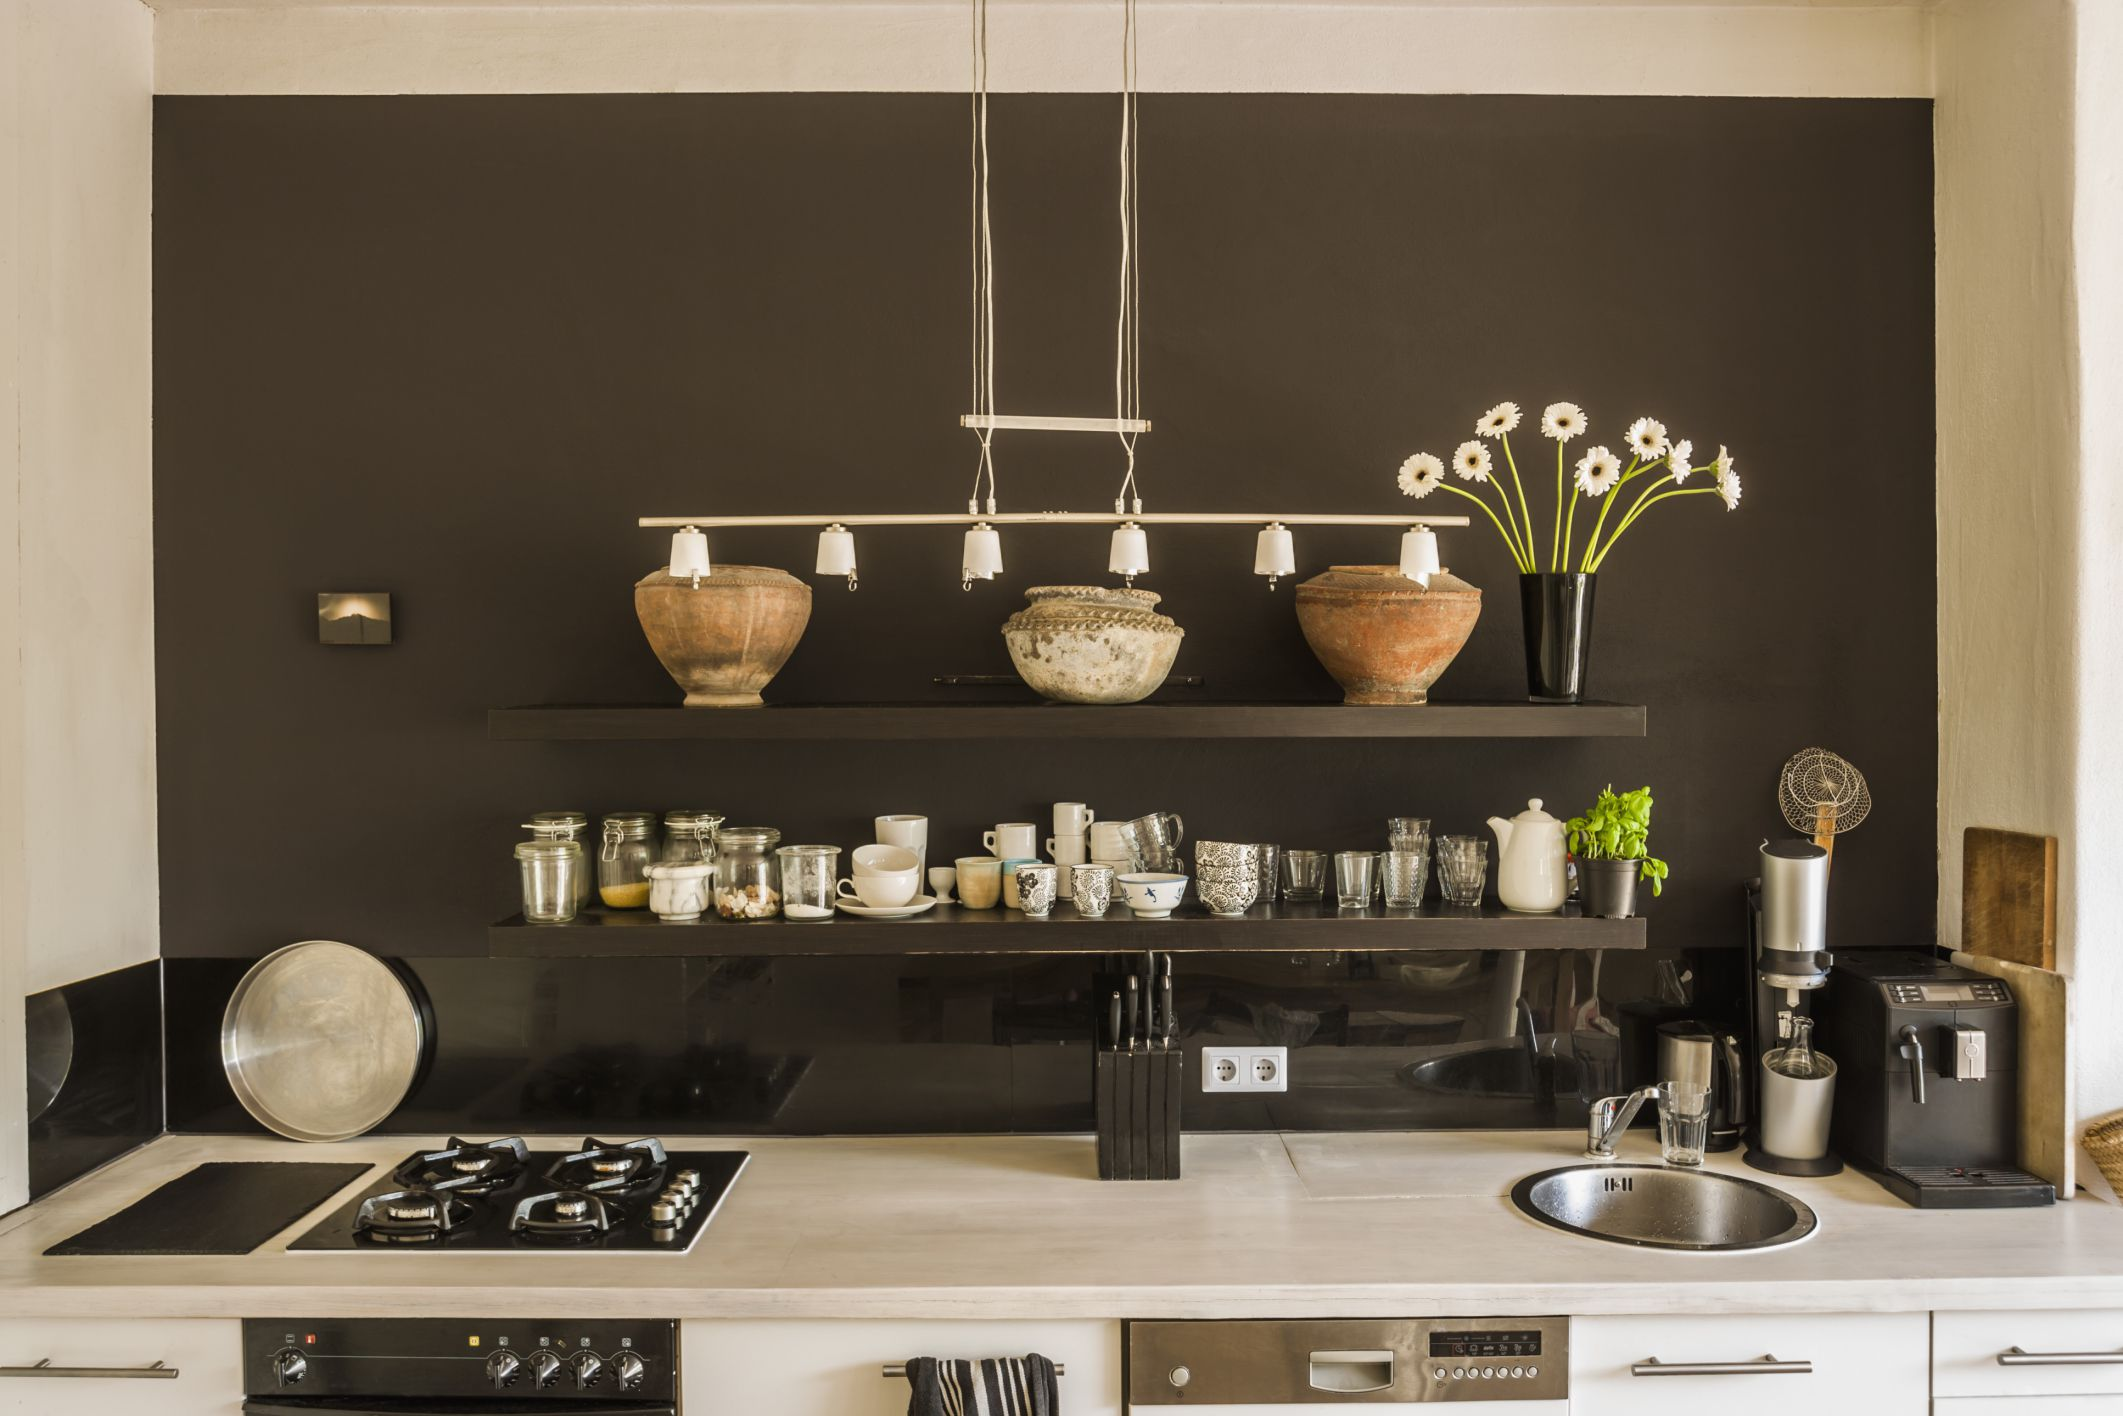 Kitchens With Open Shelving and Advice